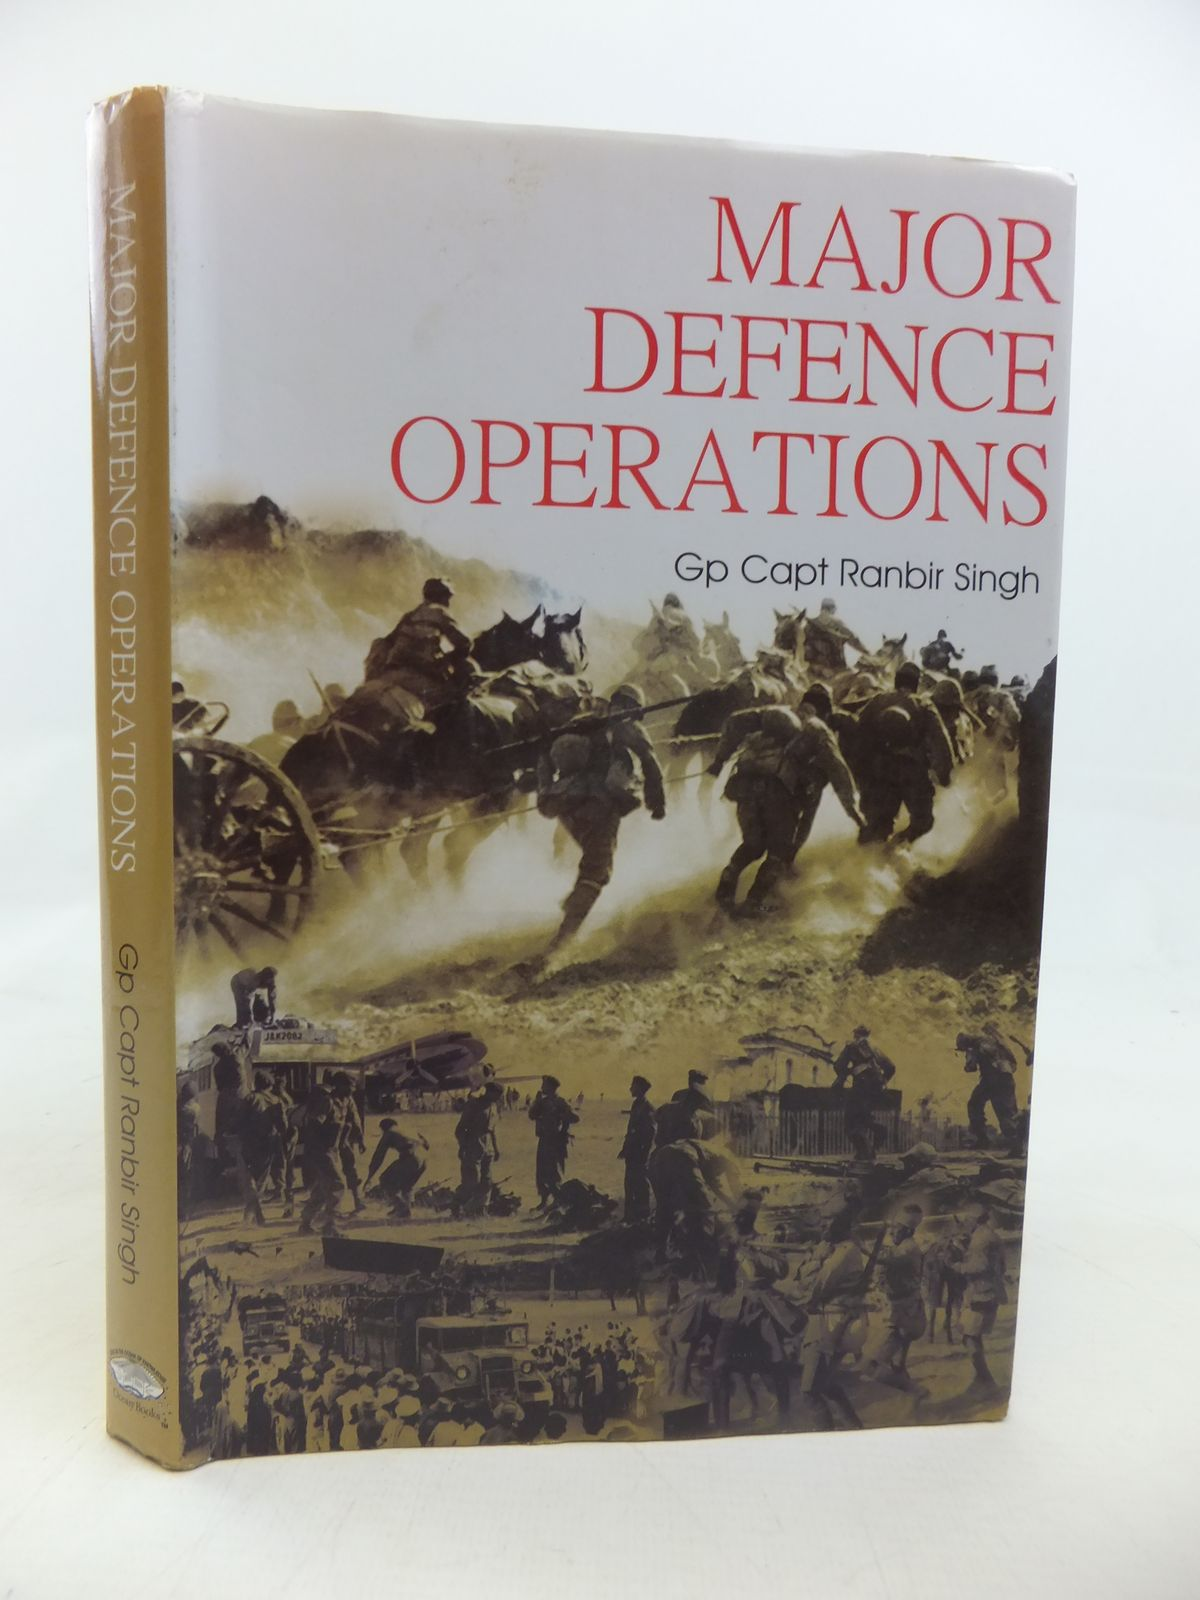 Photo of MAJOR DEFENCE OPERATIONS SINCE 1947 written by Singh, Ranbir published by Ocean Boos Pvt. Ltd (STOCK CODE: 2115595)  for sale by Stella & Rose's Books